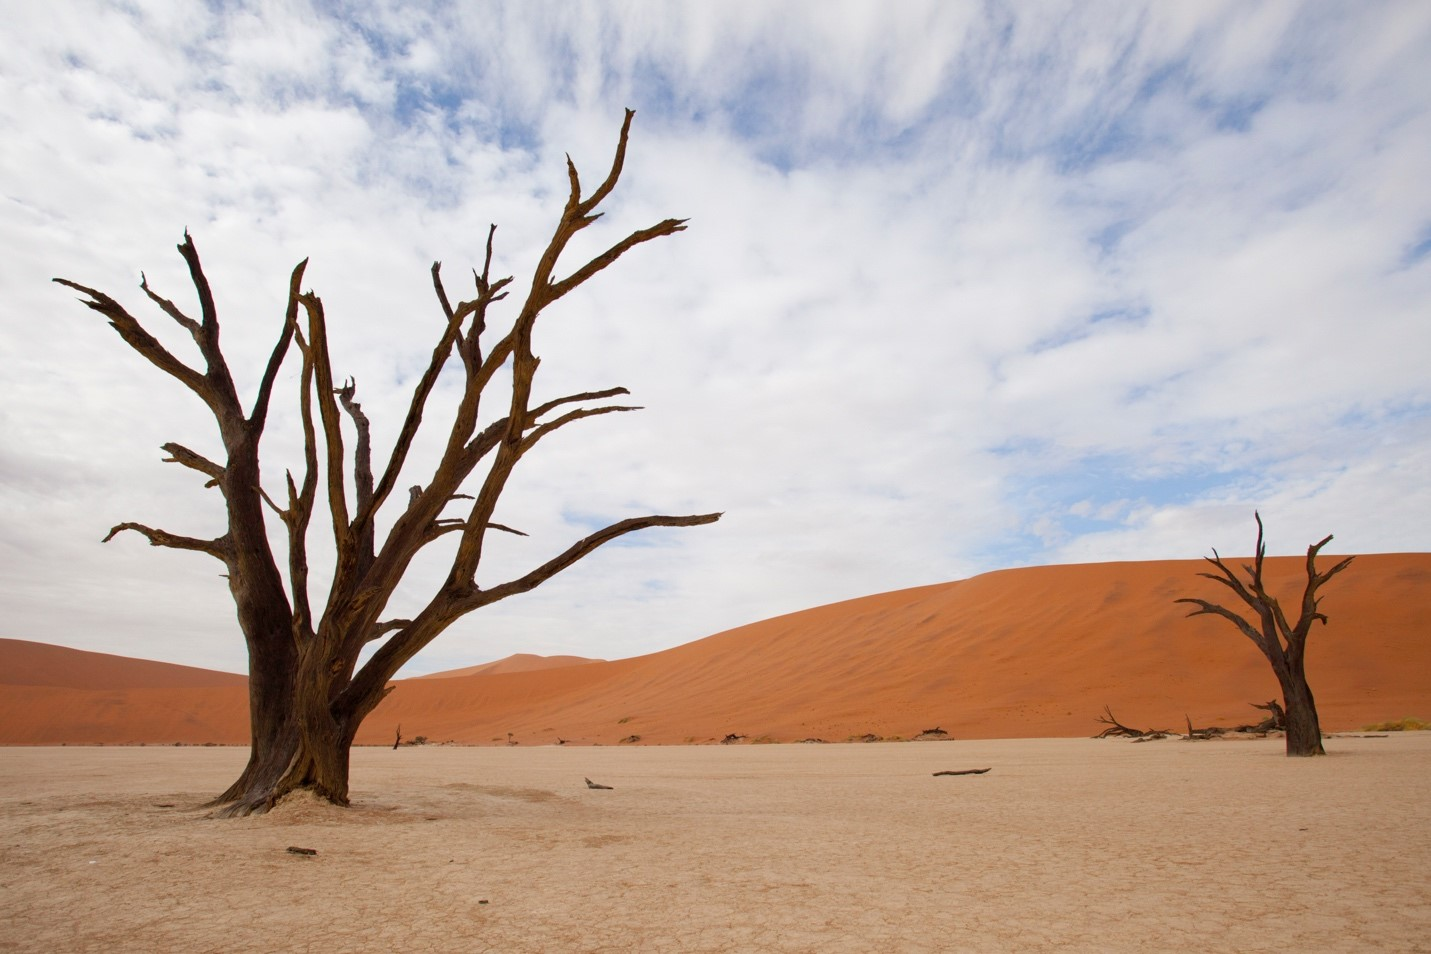 a photograph from the floor of the dead vlei in the namib desert